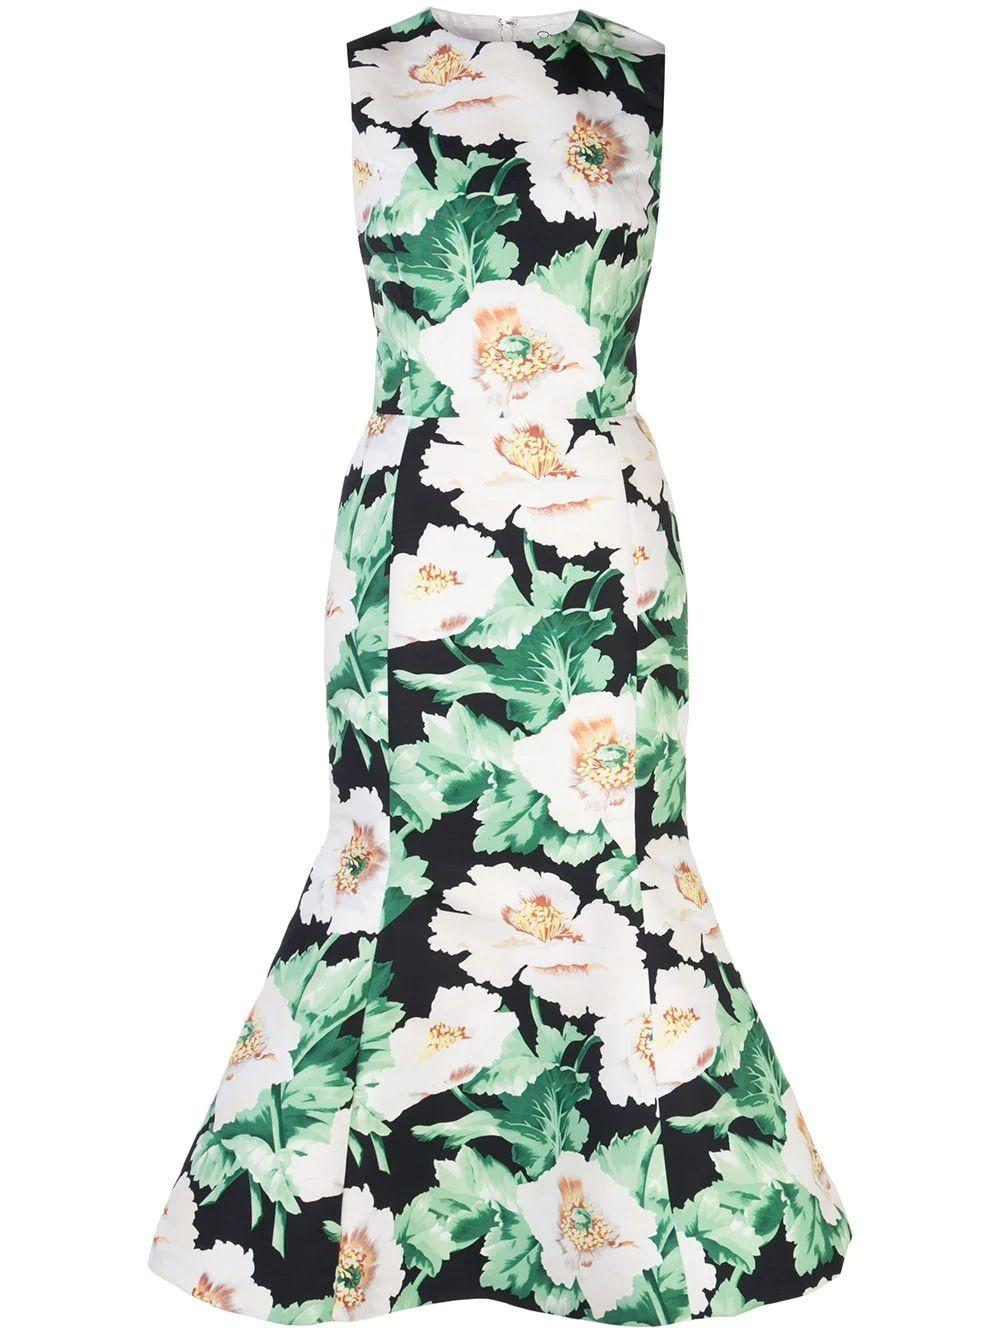 Floral Motif Cocktail Dress